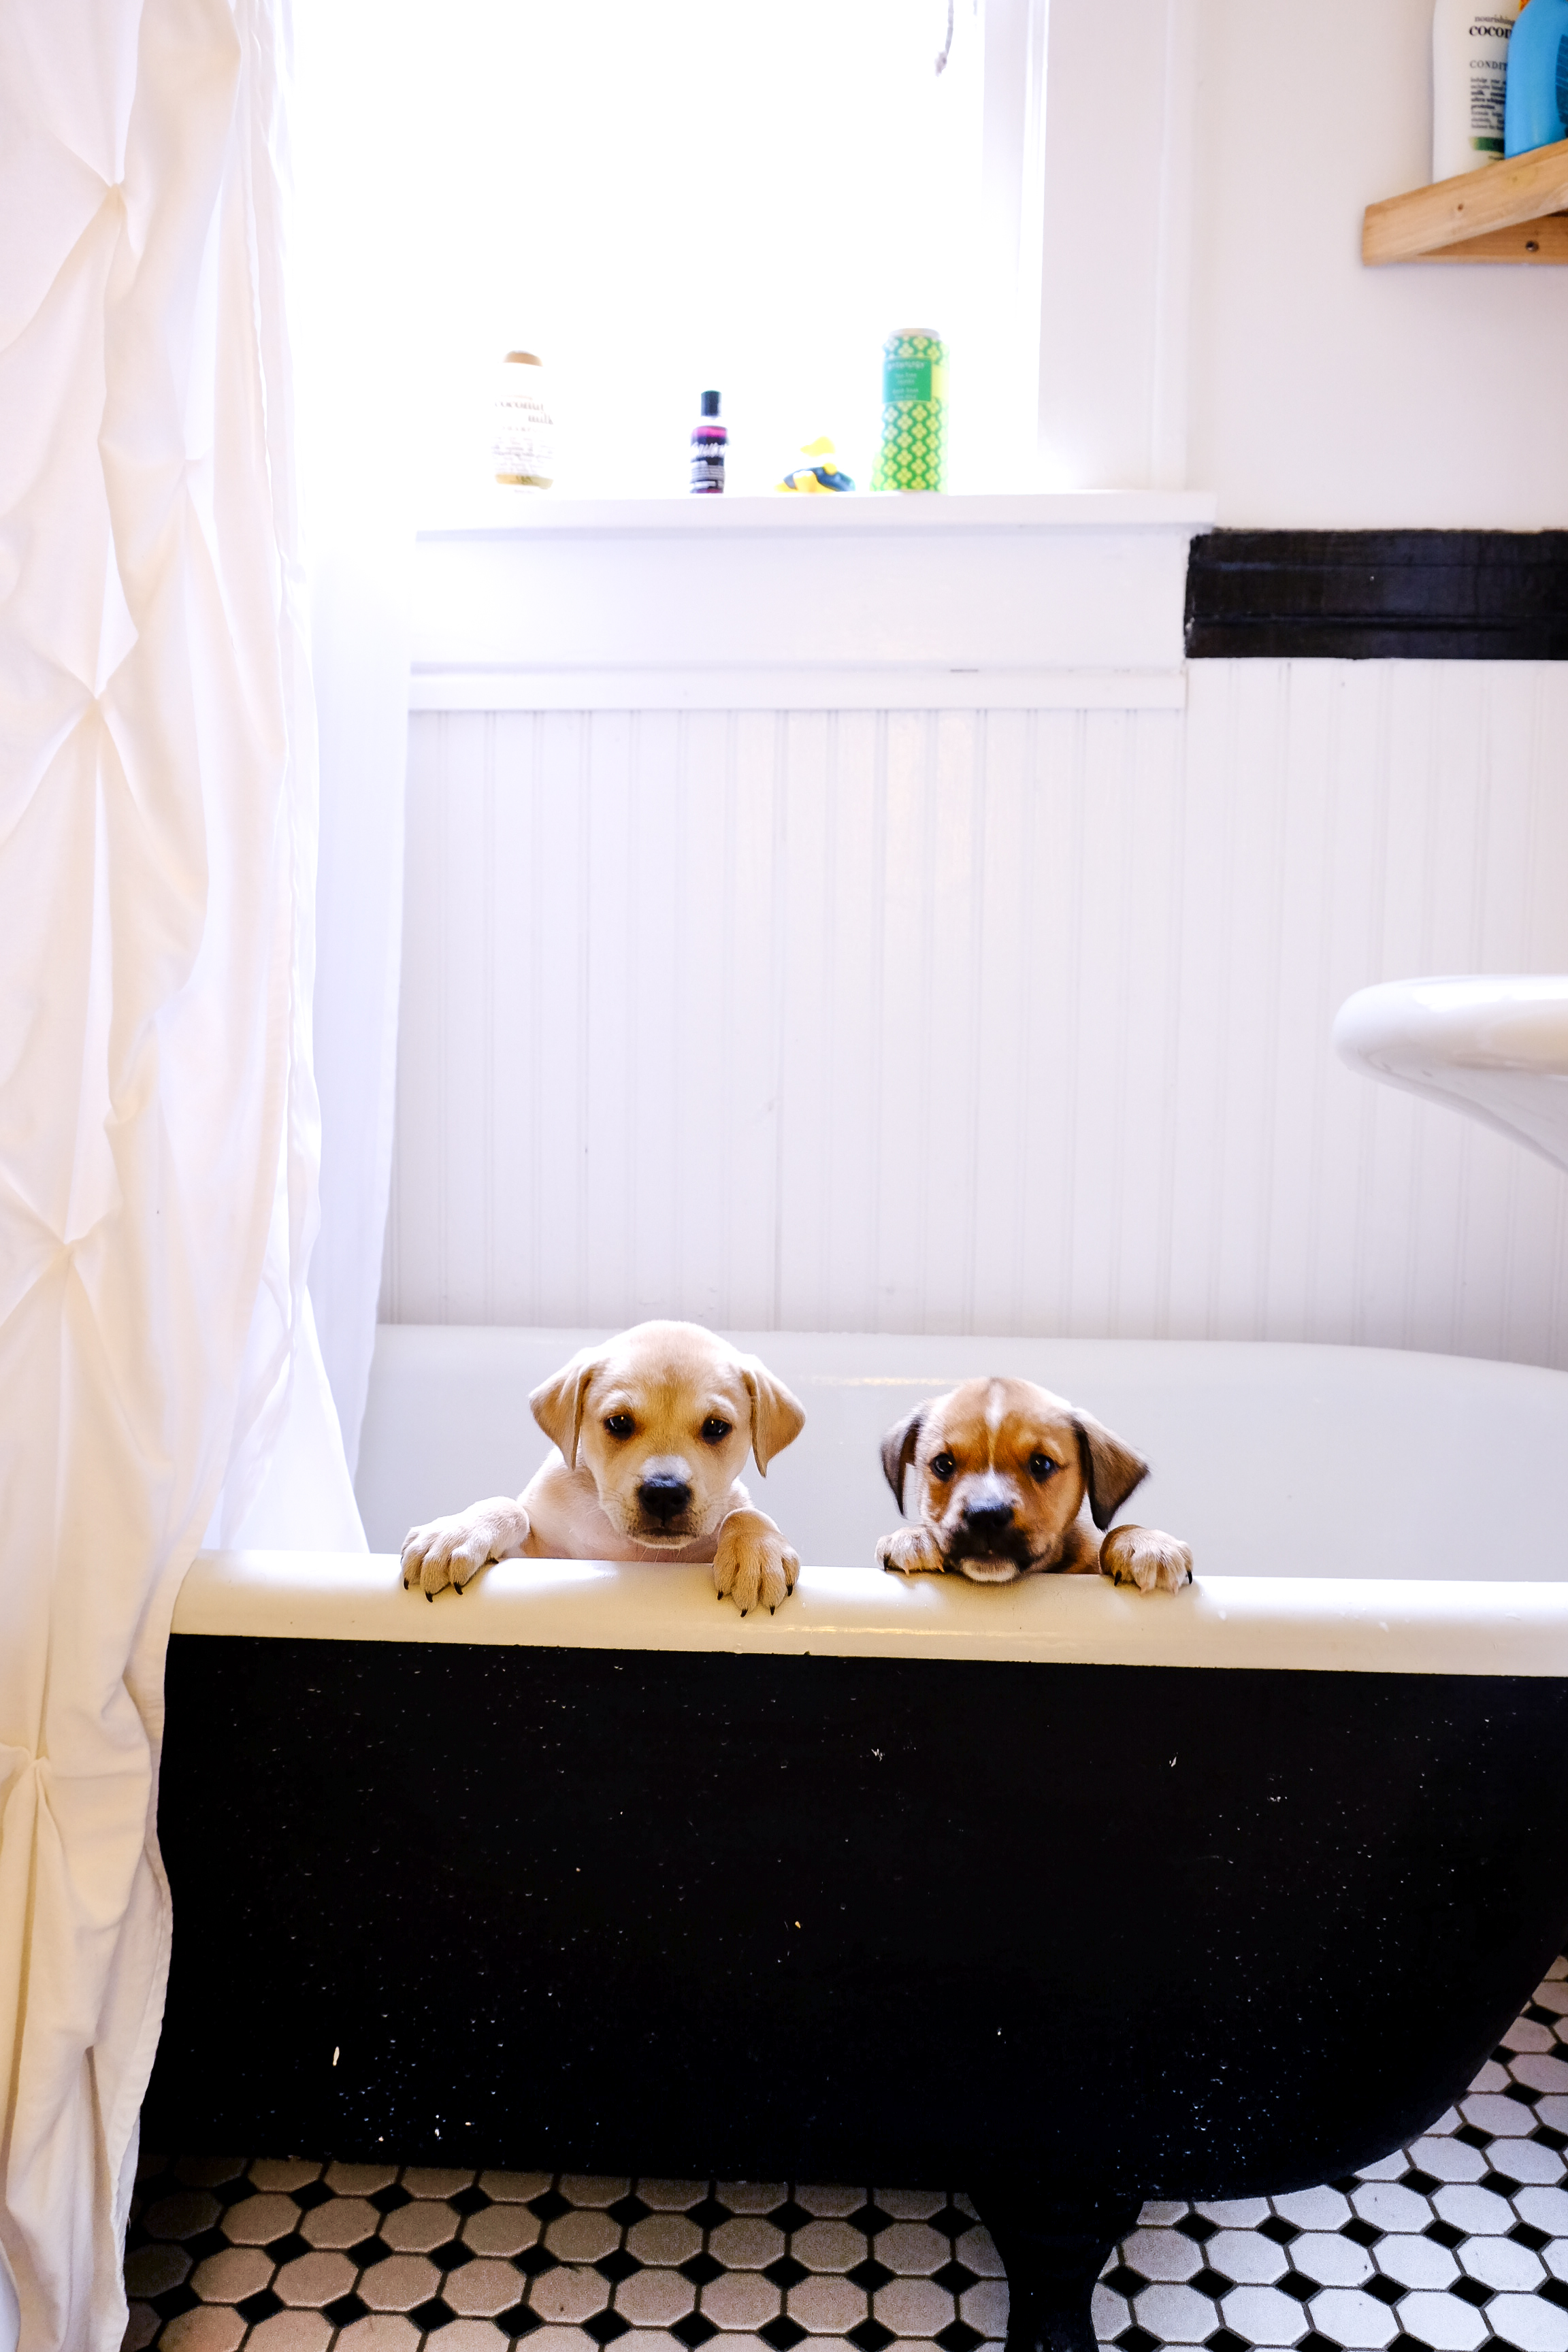 puppyinbath (1 of 1).jpg